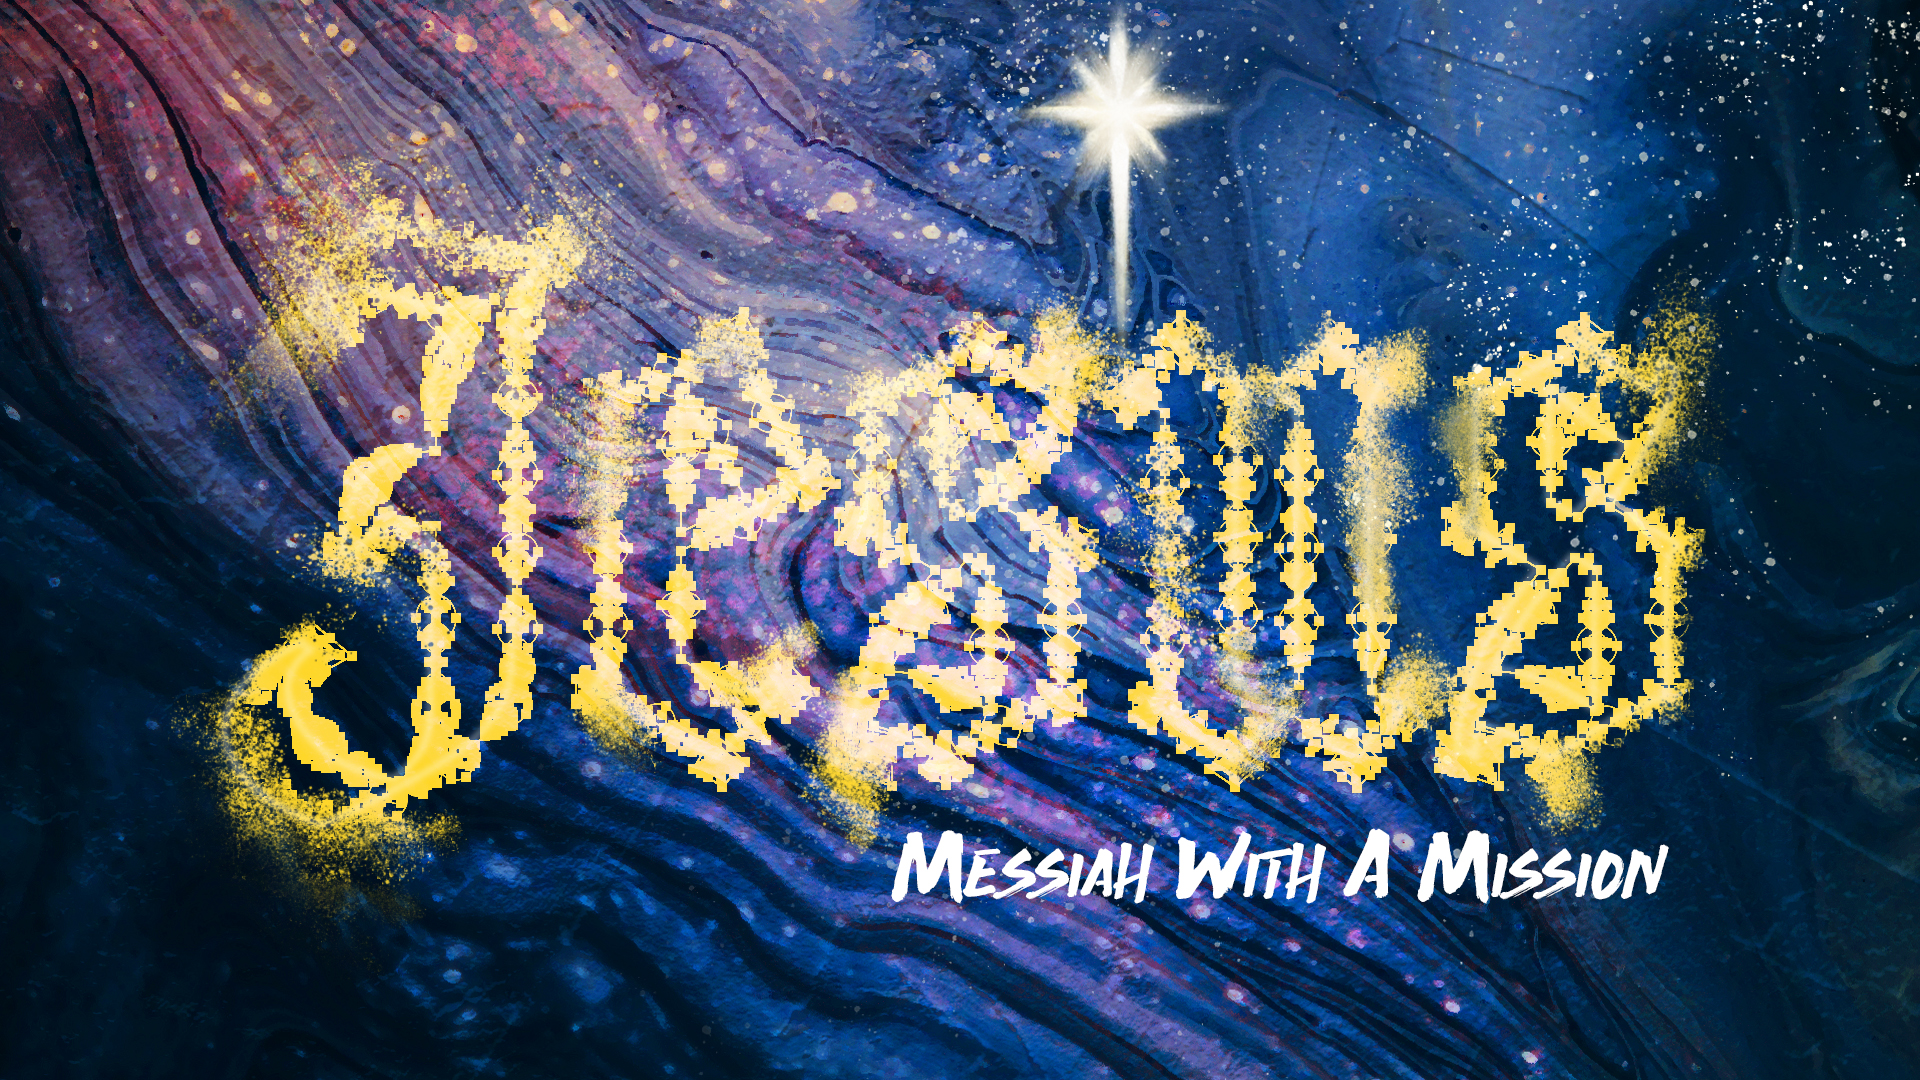 Jesus: Messiah With A Mission